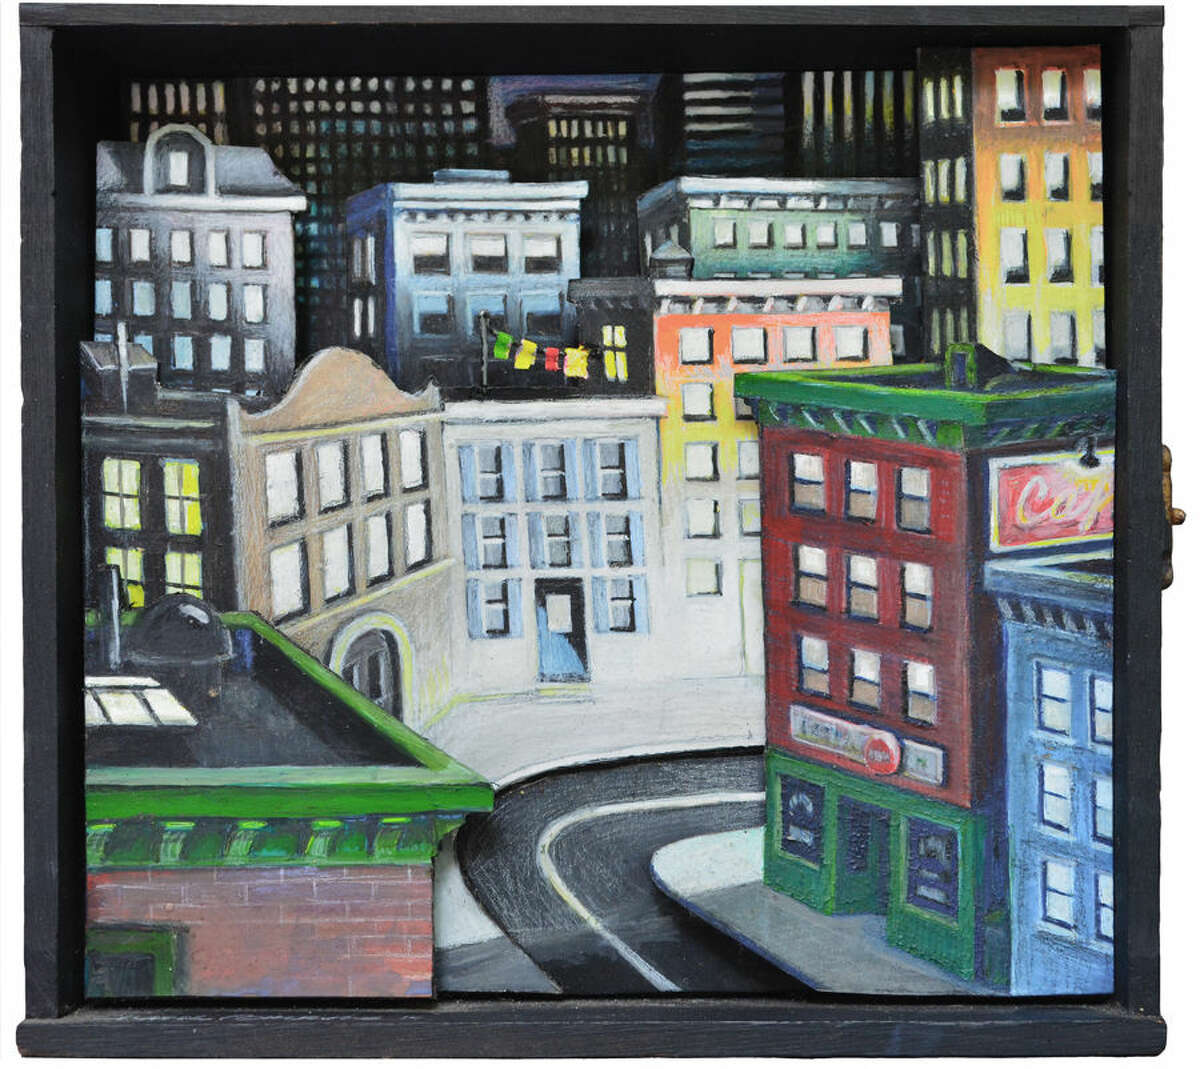 """Chance Browne: """"Bright Lights, Big City"""" (2015), Mixed media on cut paper in cigar box, approx. 7"""" x 8"""""""